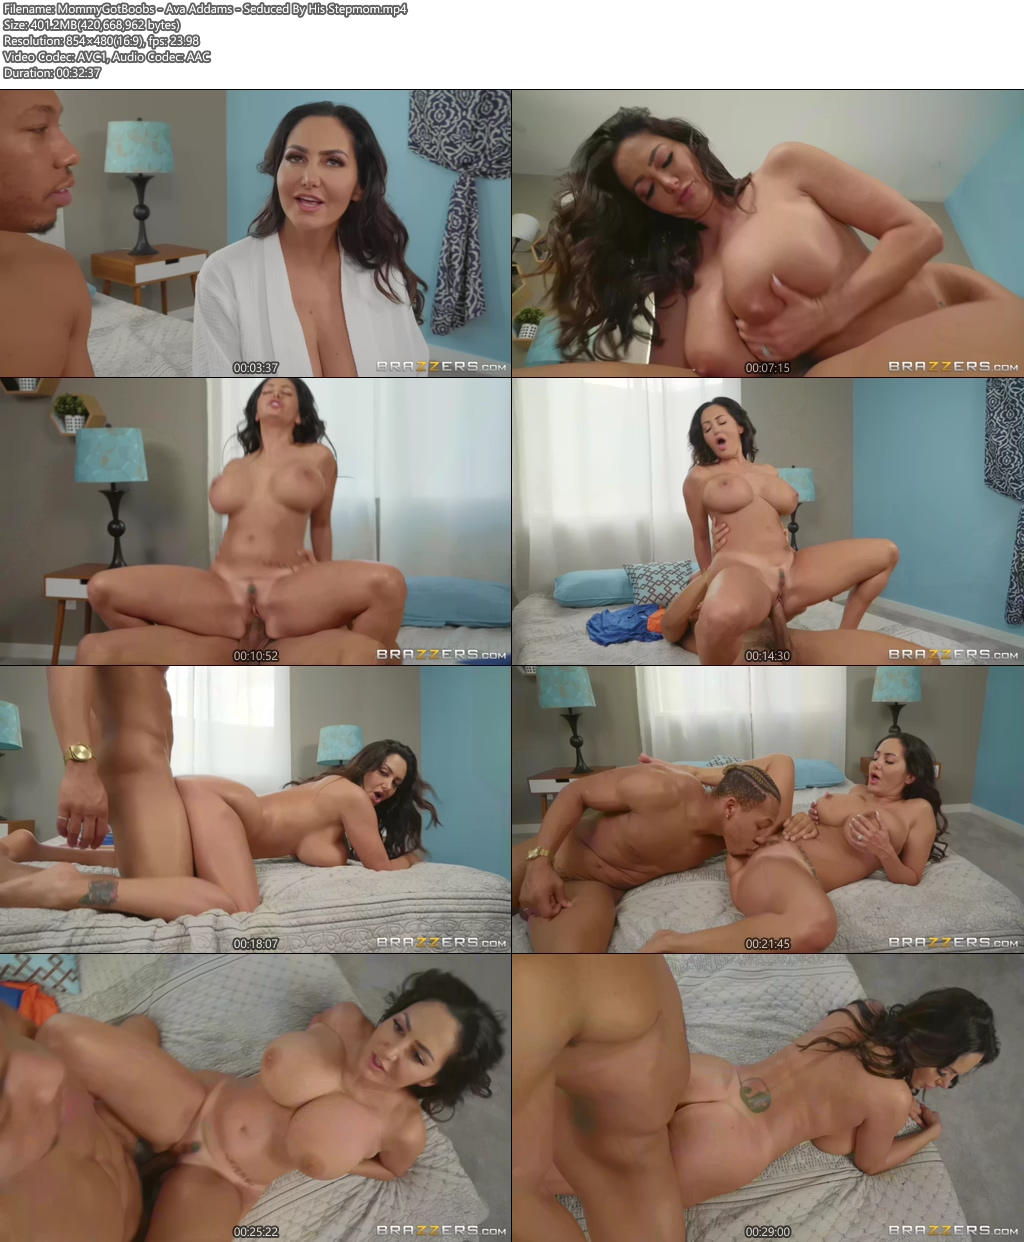 [18+] MommyGotBoobs - Ava Addams Porn Clip - Seduced By His Stepmom XXX Screenshot